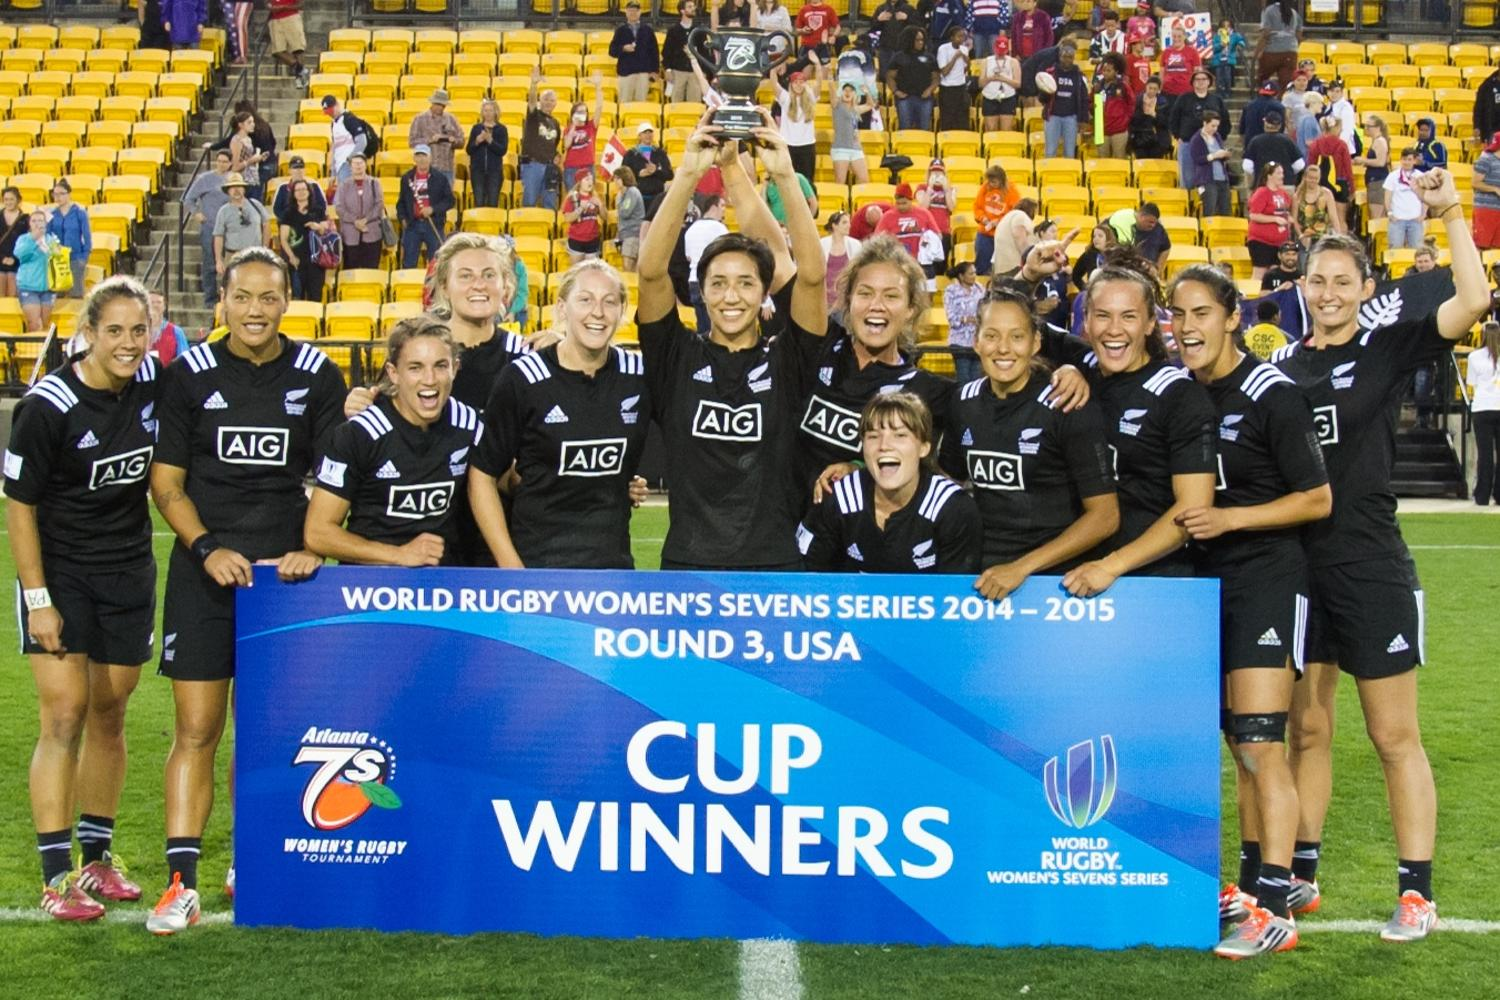 New Zealand v USA Final Women's Sevens Series 2014/15